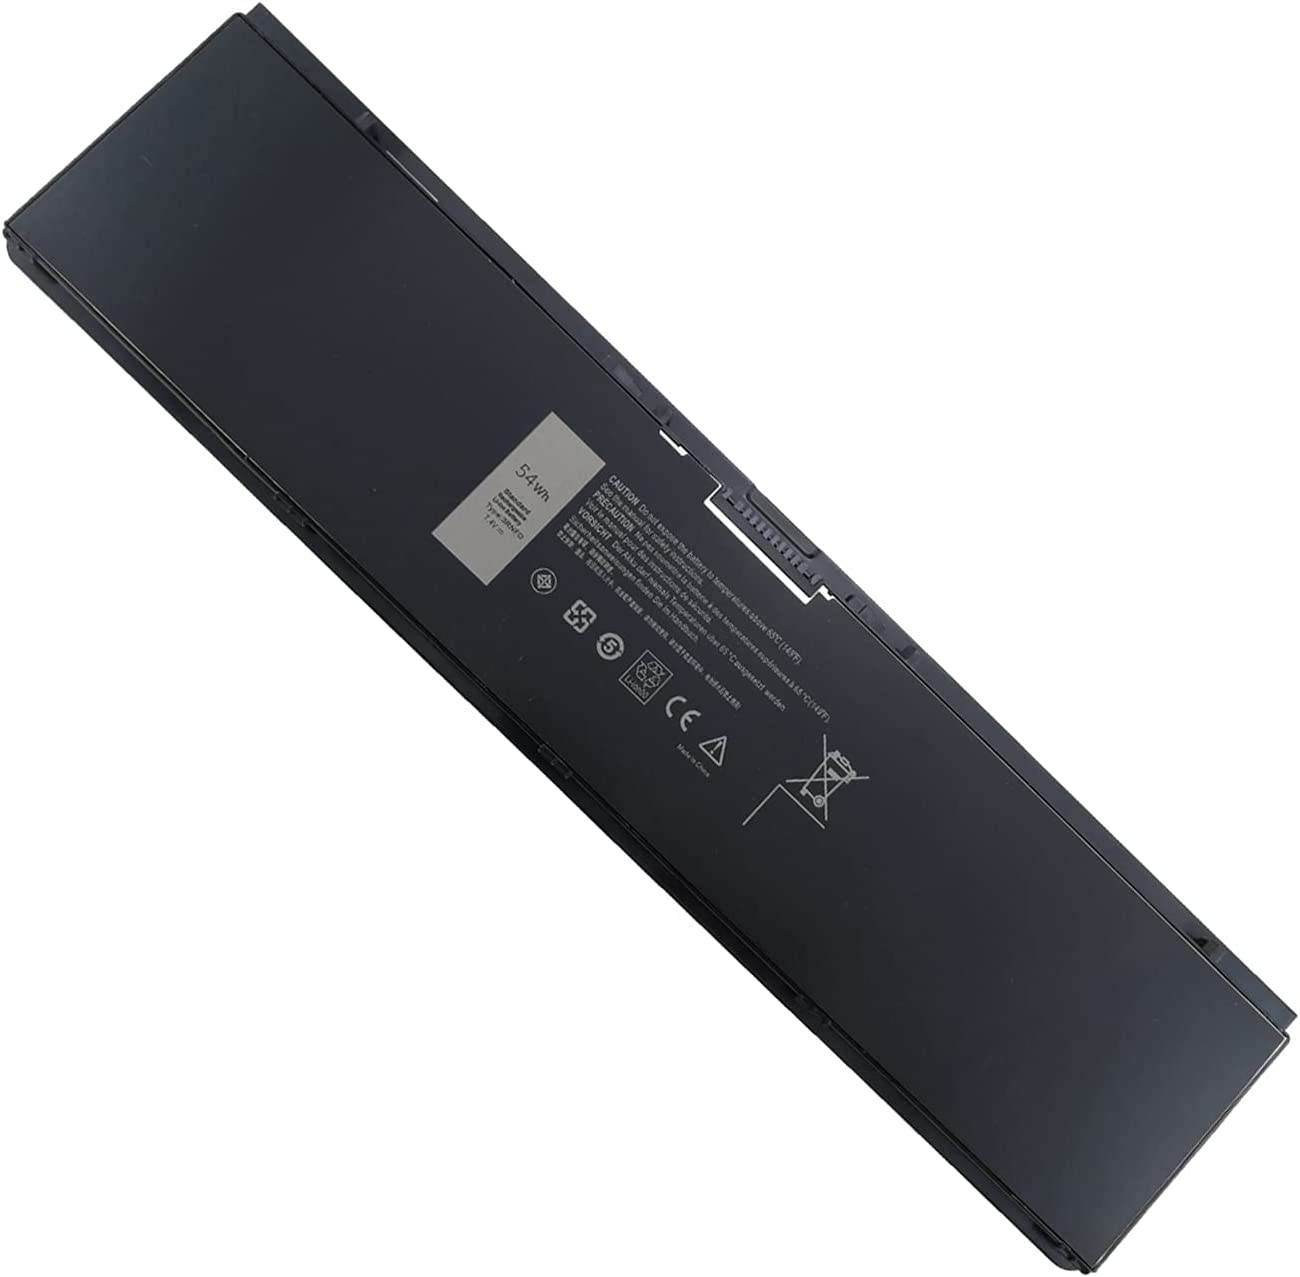 Damaite 54WH 7100mAh 3RNFD Laptop Battery for Dell Latitude E7440 E7450 E7420 Series 34GKR PFXCR F38HT G95J5 G0G2M T19VW 909H5 0909H5 7440 7450 7420 Replacement Notebook High Performance 4 Cells 7.4V